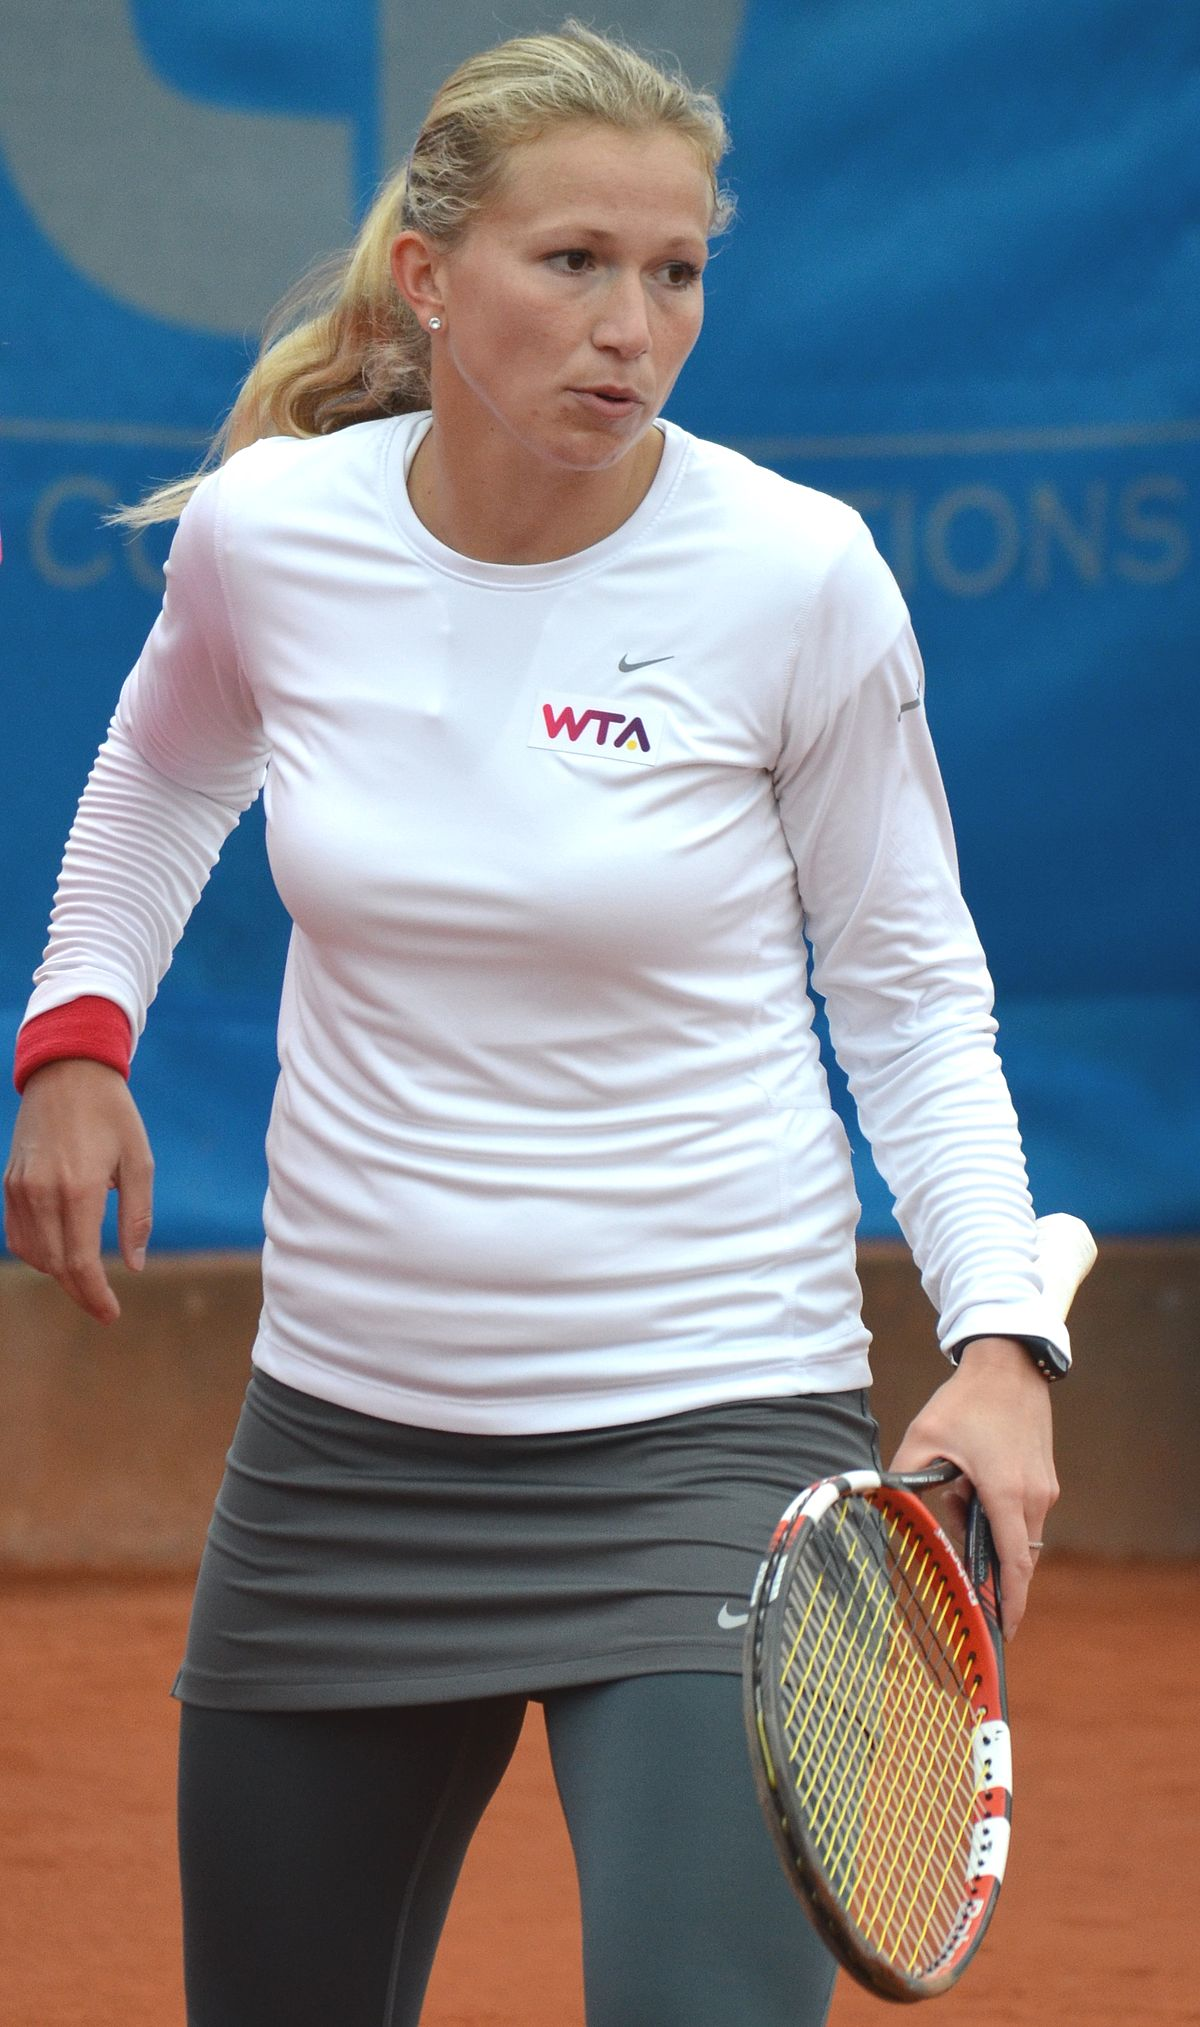 Michaëlla Krajicek earned a  million dollar salary - leaving the net worth at 1.5 million in 2018